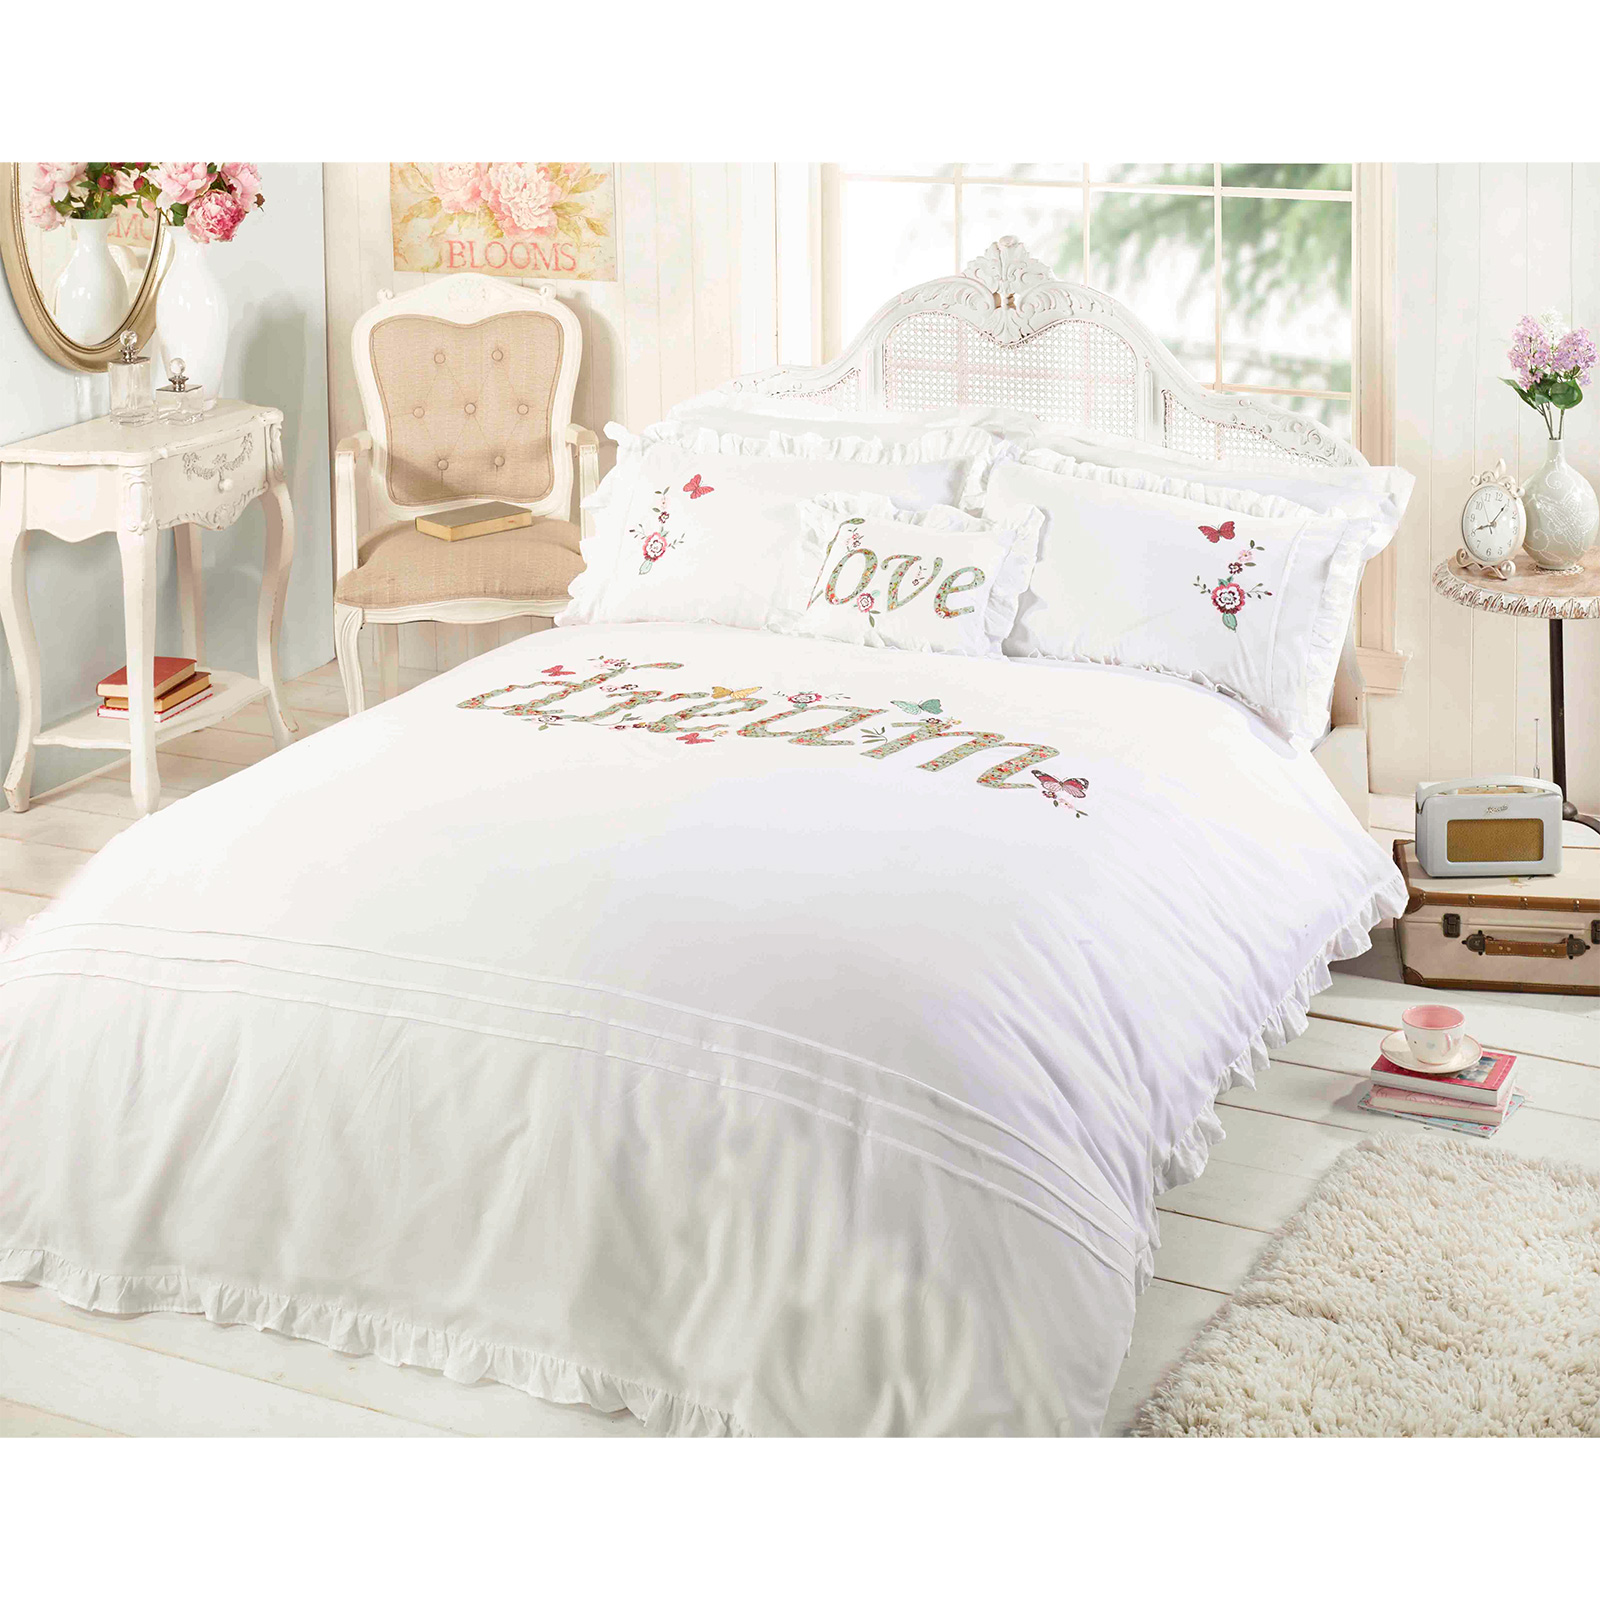 Shabby Chic Duvet Cover Luxury Embroidered Applique